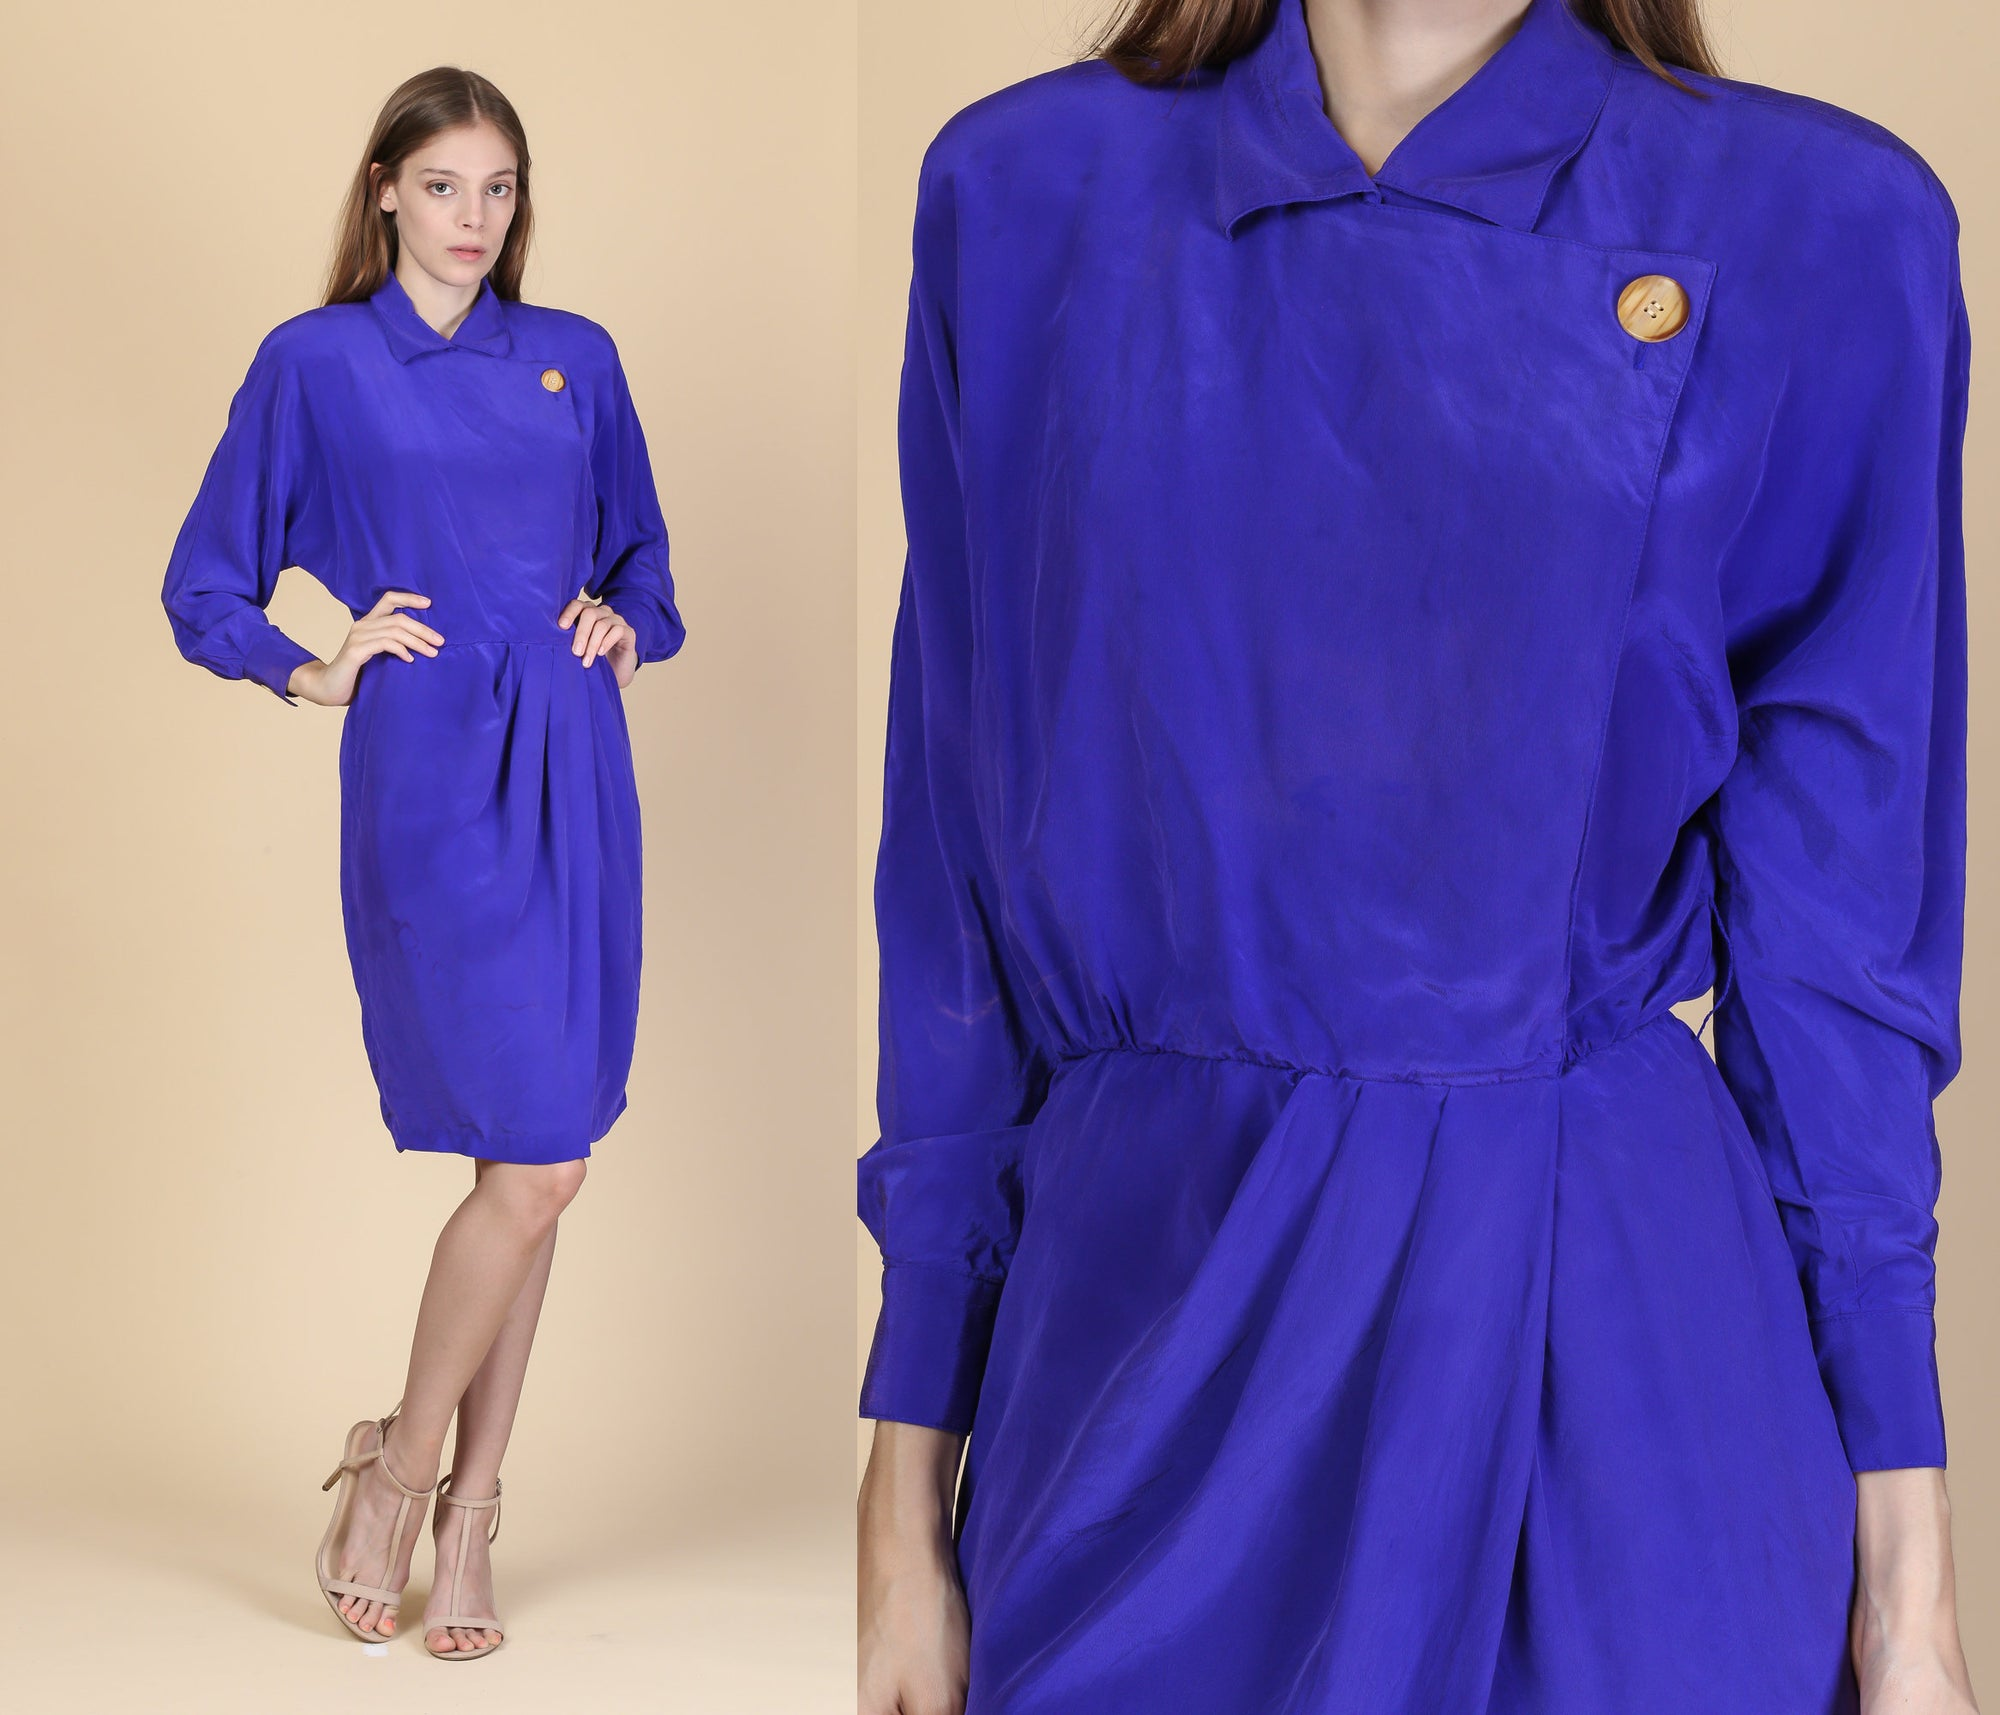 80s Retro Silk Wrap Dress - Small